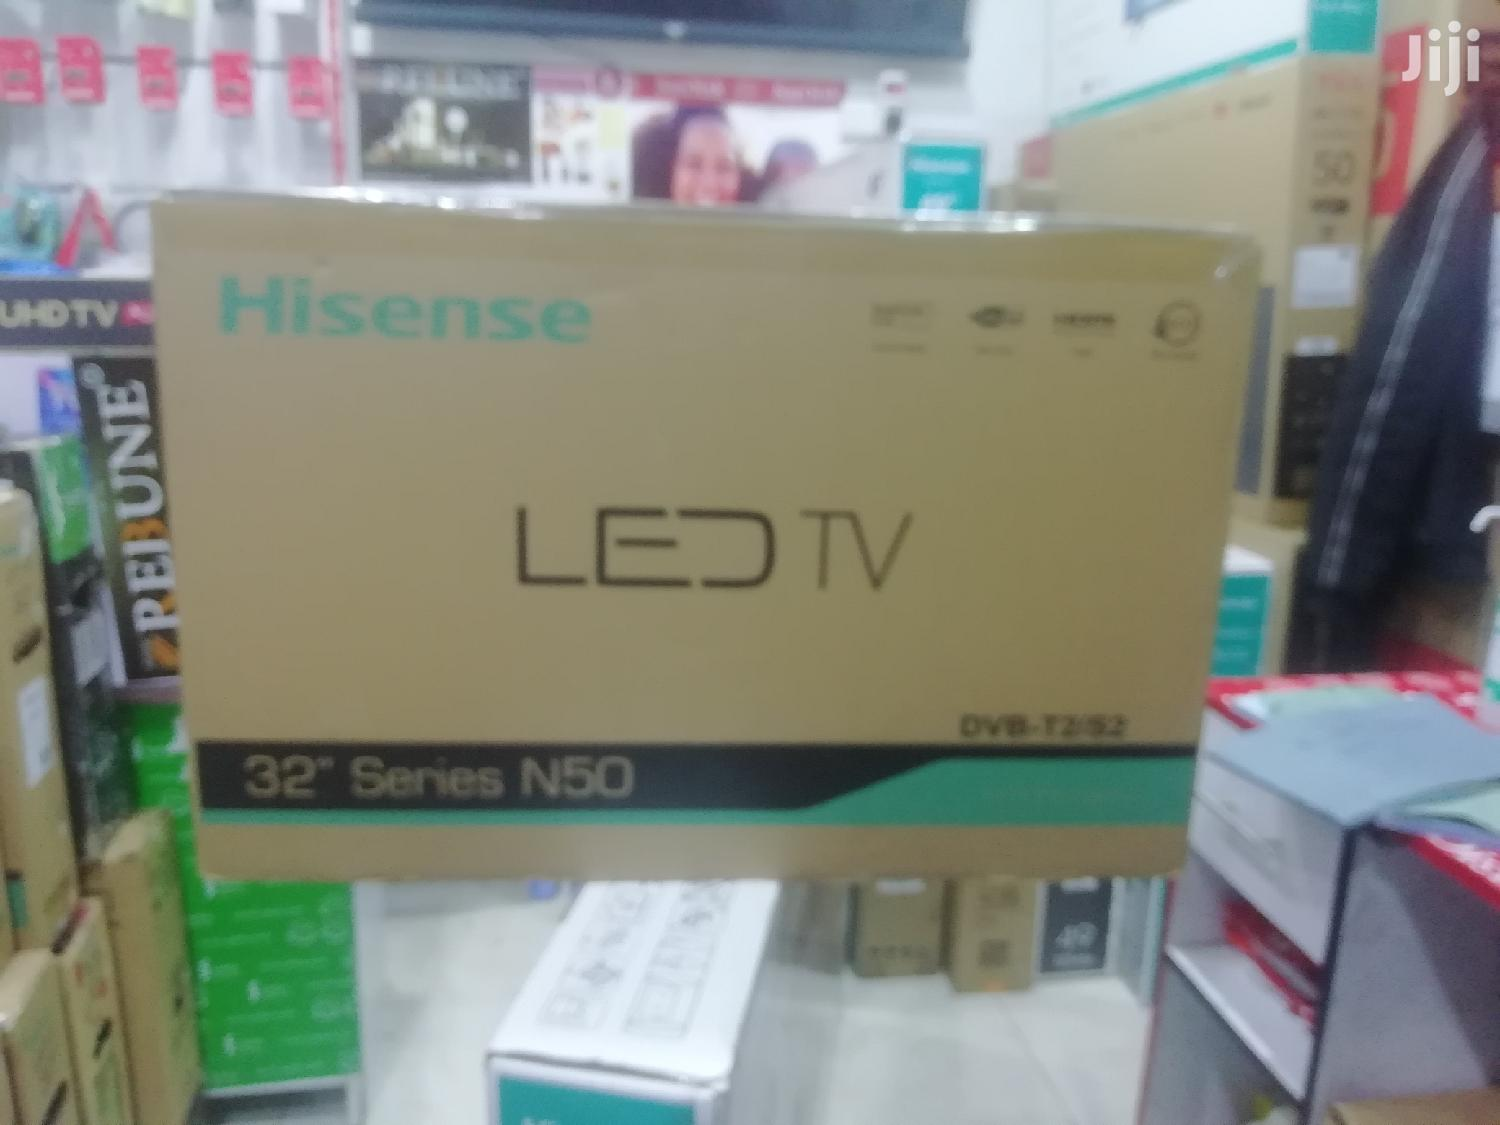 "HISENSE 32"" Digital Frameless TV"